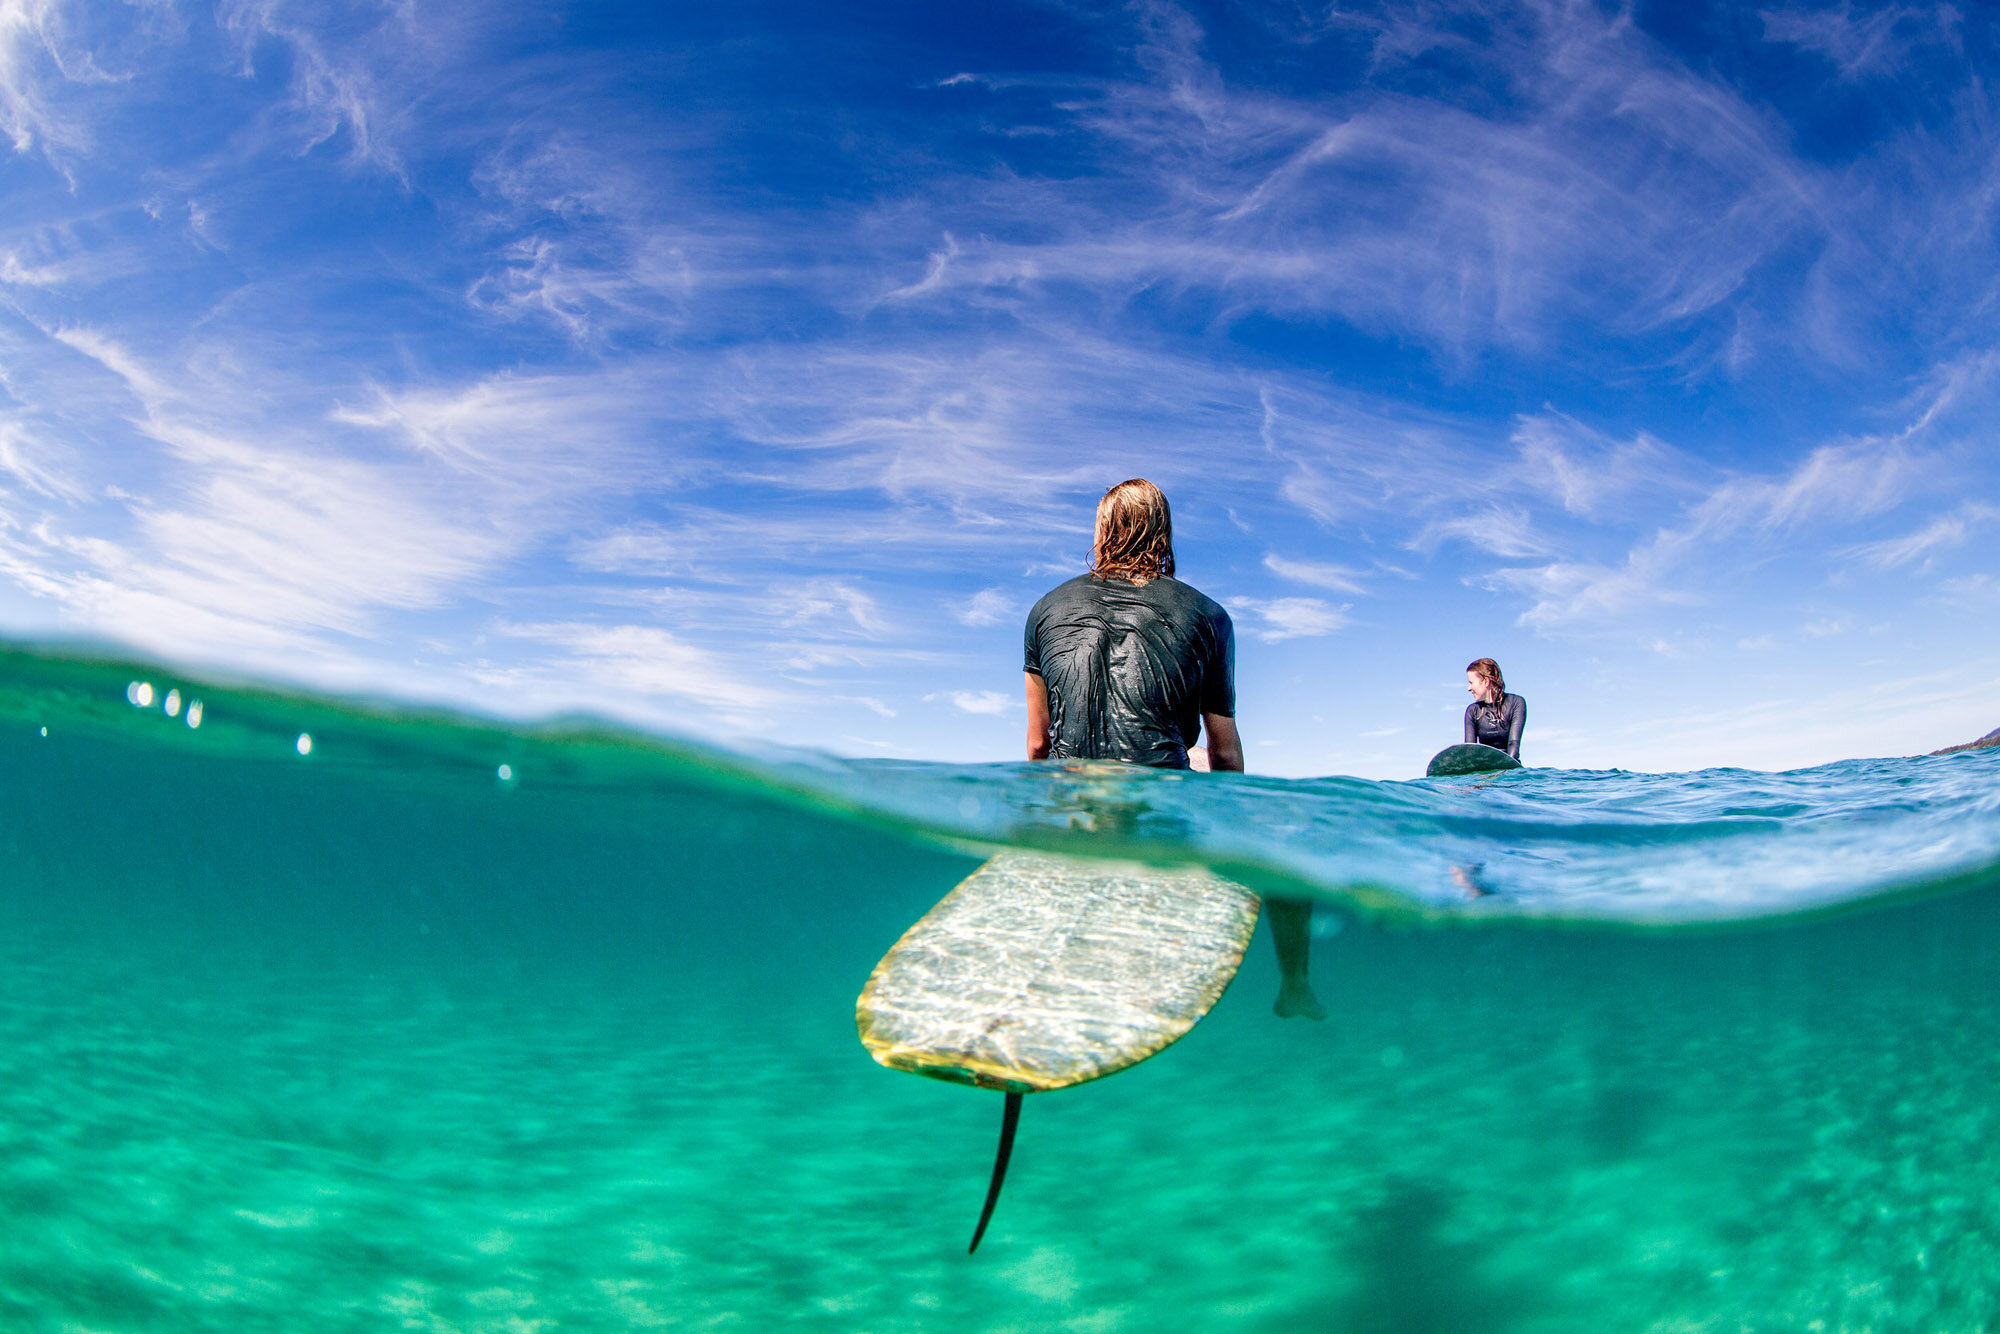 Tom Woods Ocean Photographer Interview - Learn Surf Photography